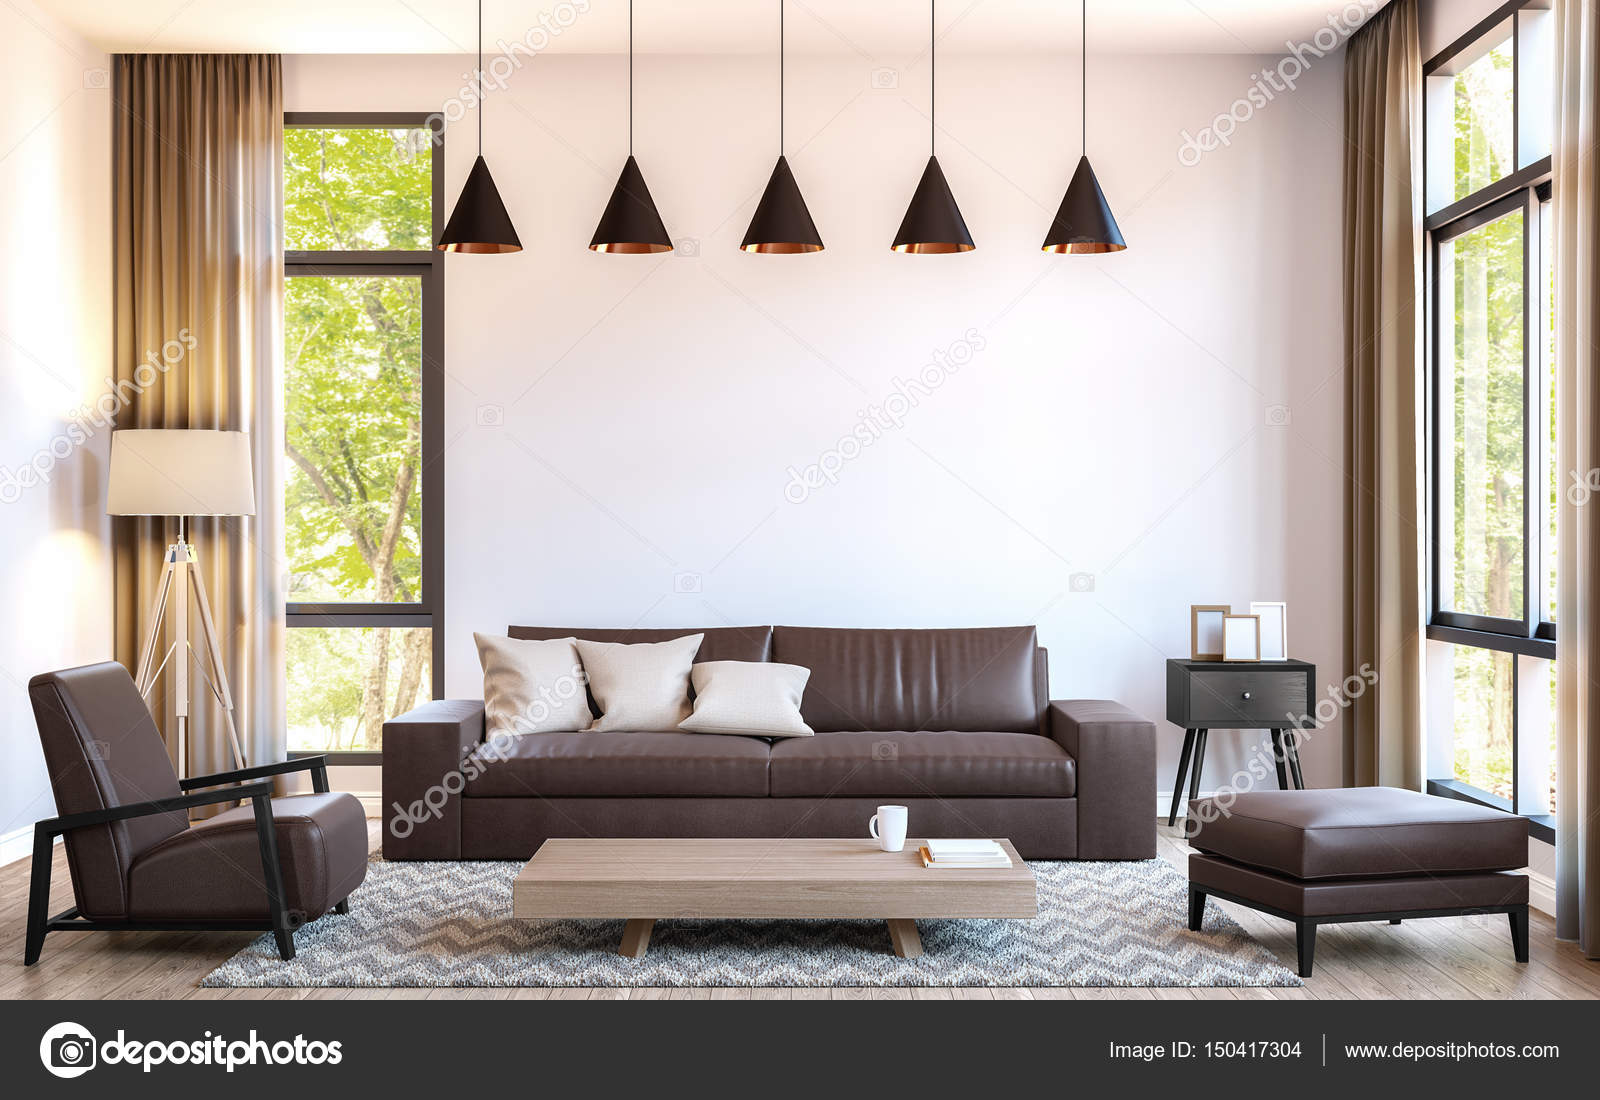 depositphotos stock photo modern living room decorate with